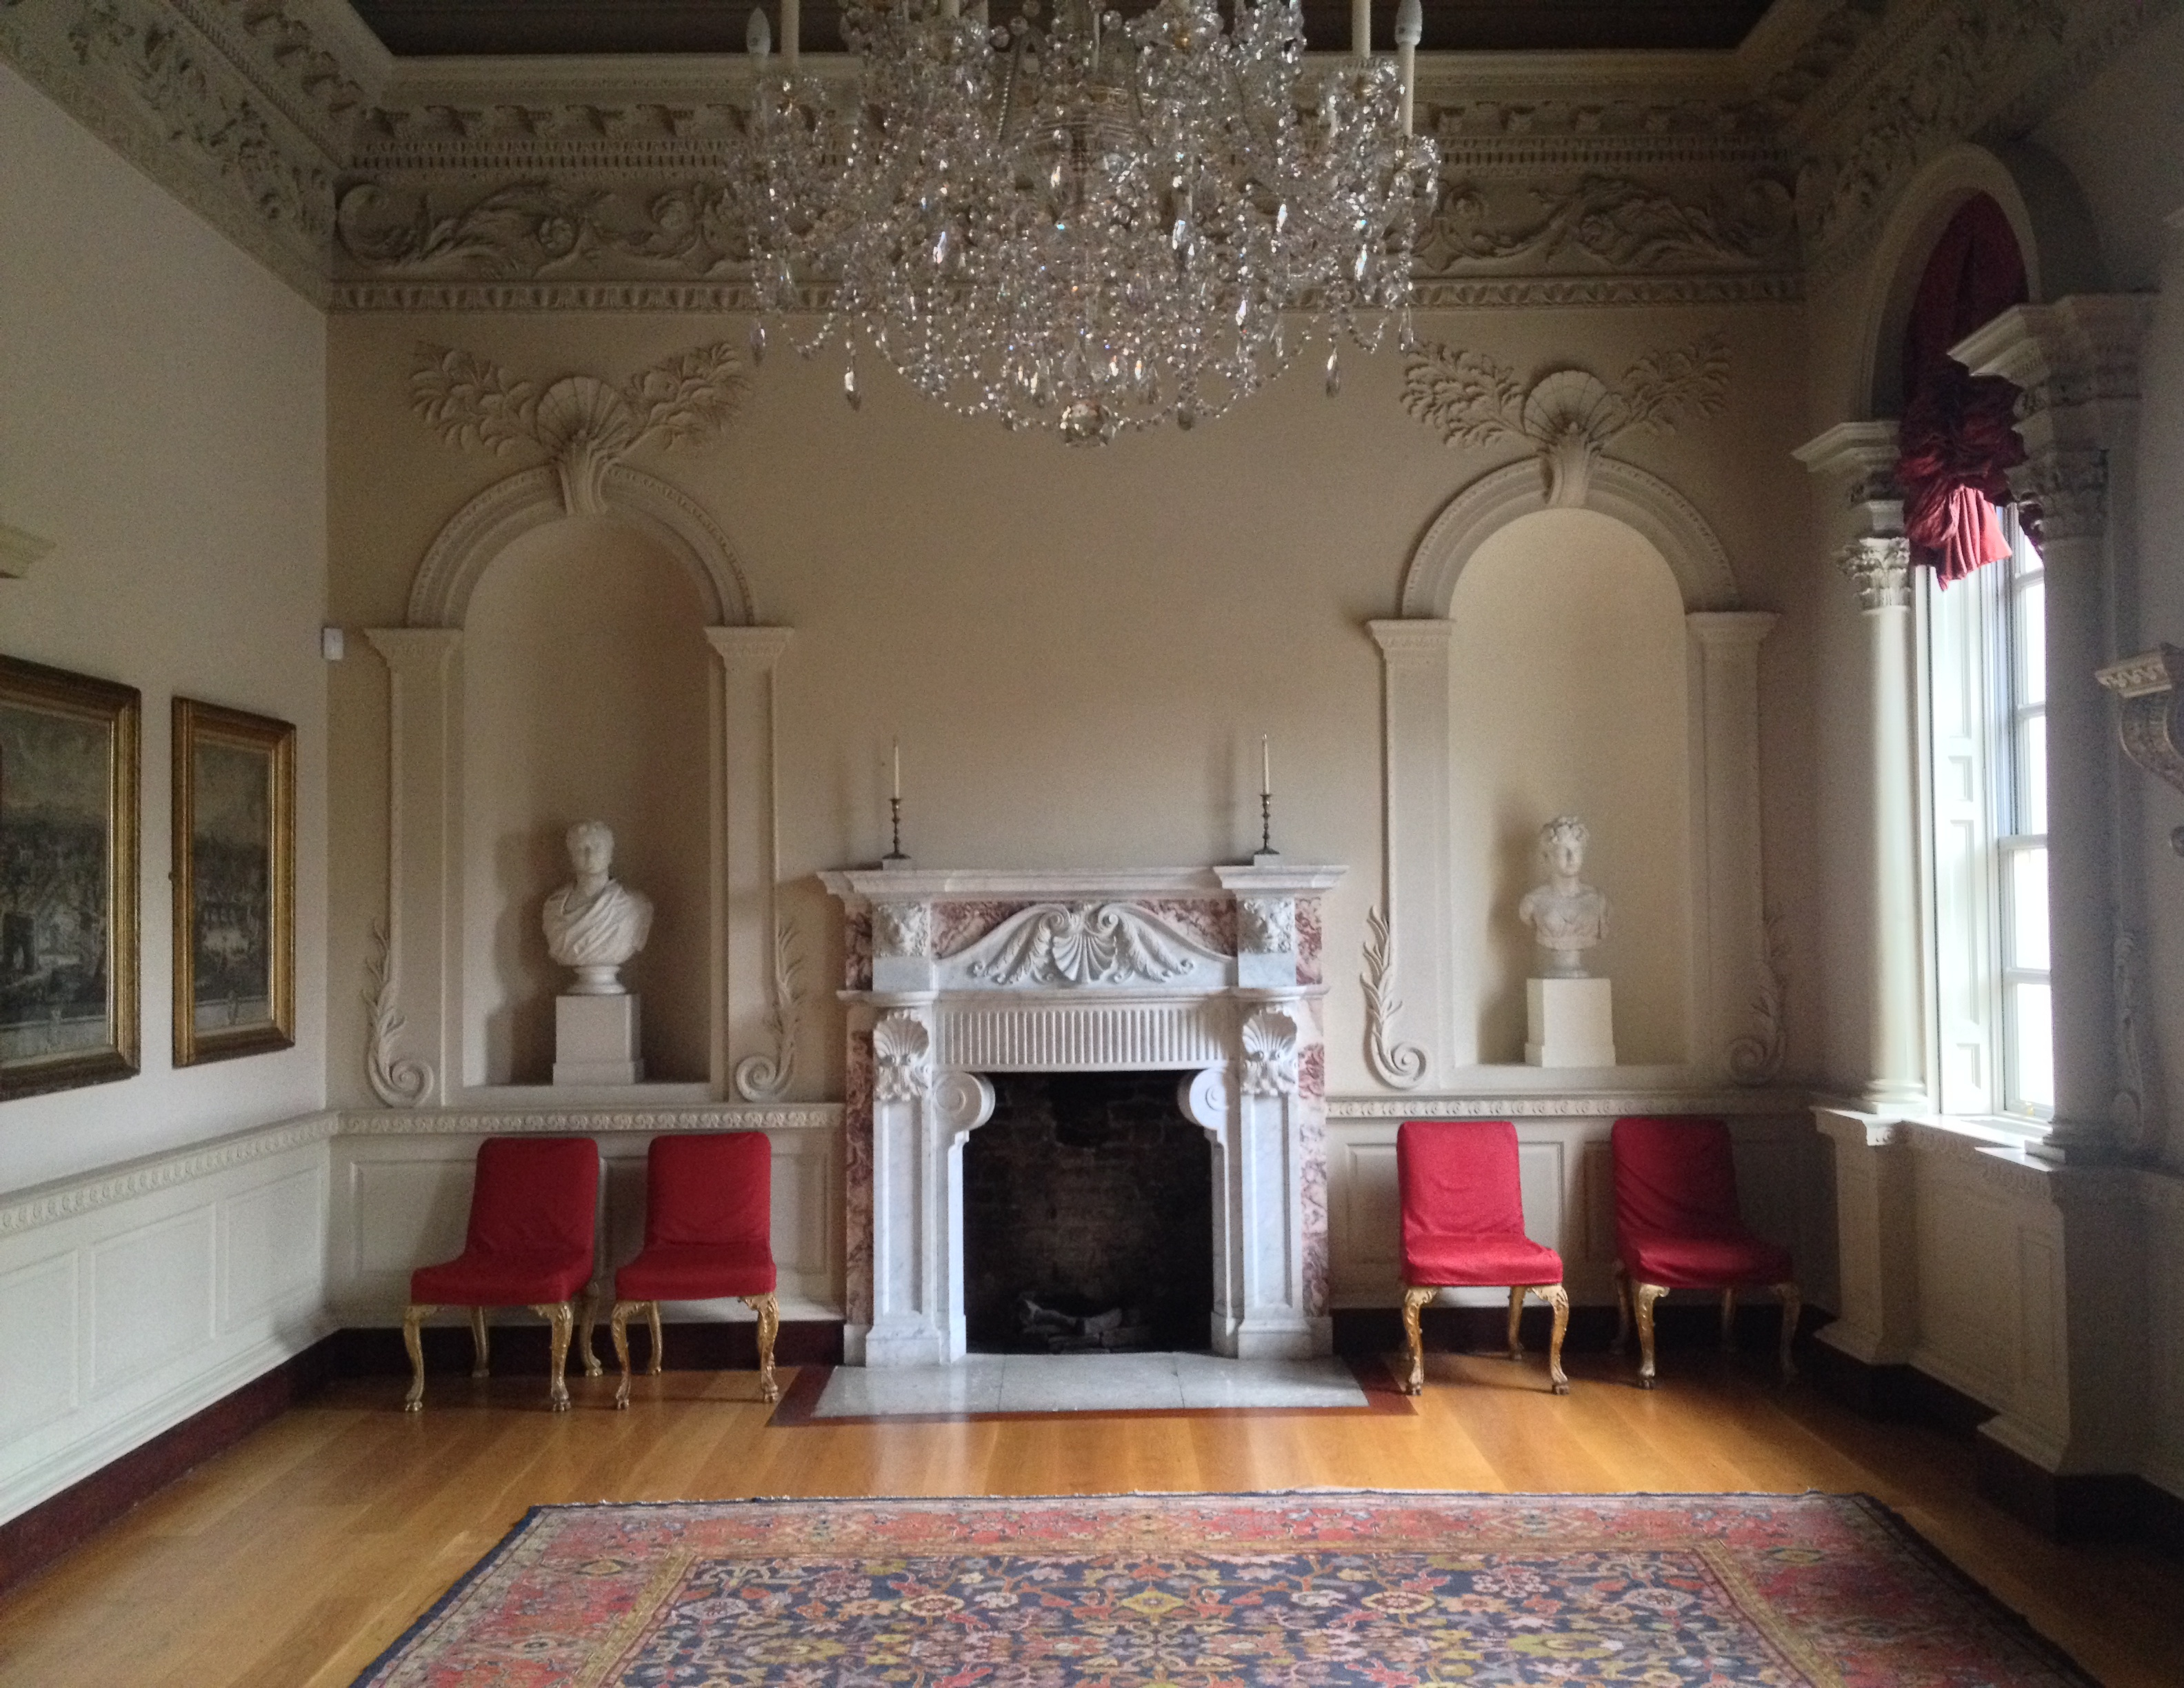 The most beautiful room in ireland the irish aesthete - Beautifull rooms ...